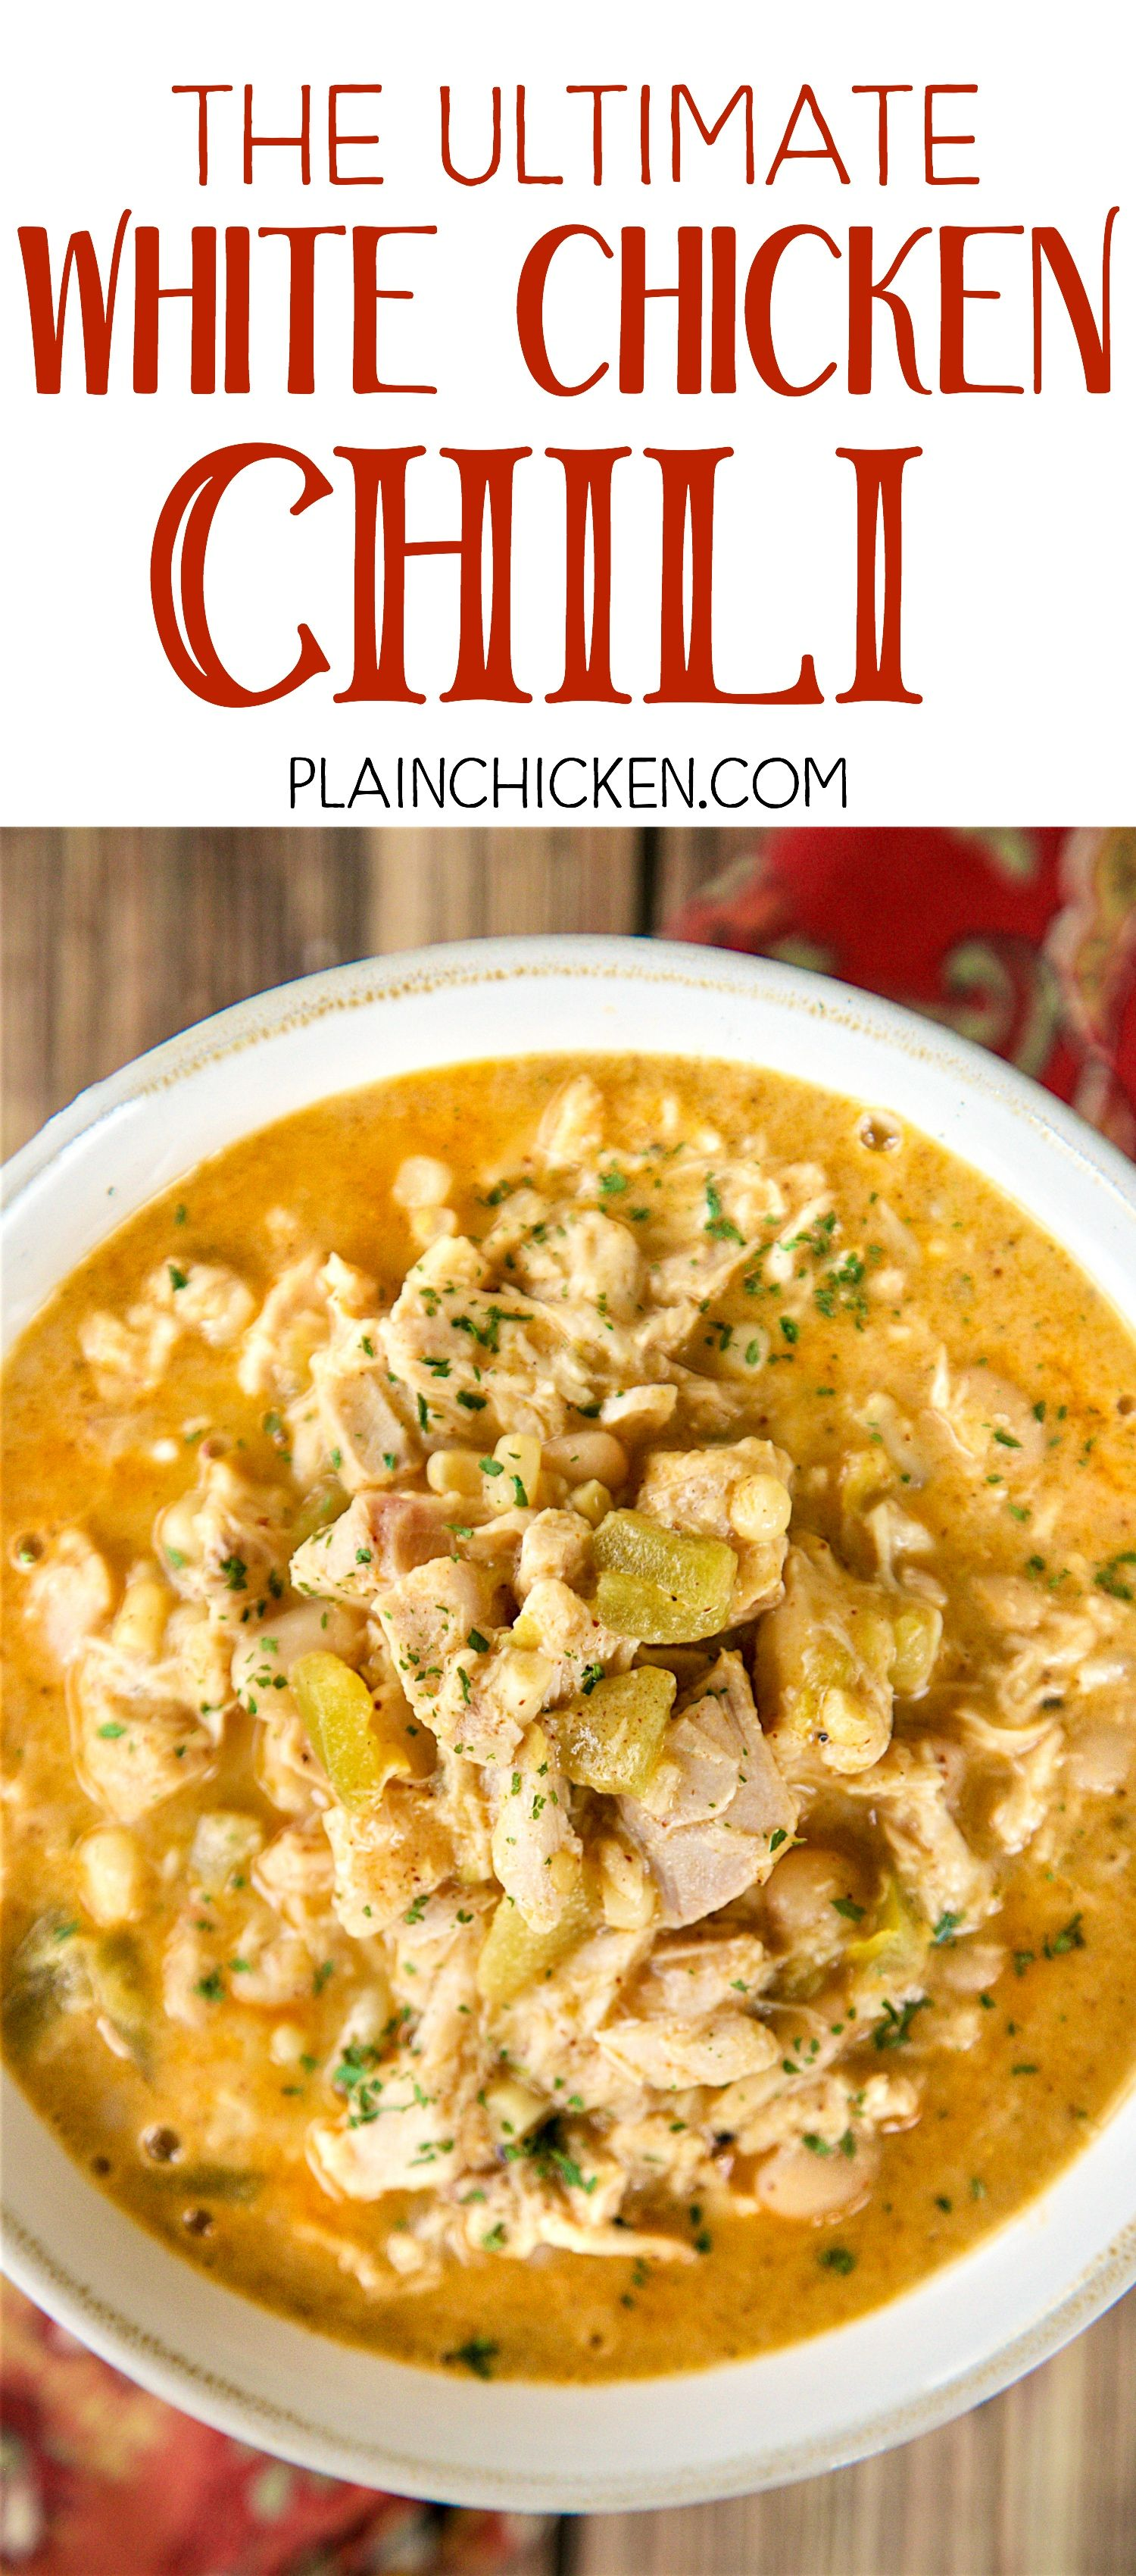 The Ultimate White Chicken Chili The Best Of The Best White Chicken Chilis So Good And Chicken Chili Recipe Chicken Chili Crockpot White Chicken Chili Easy